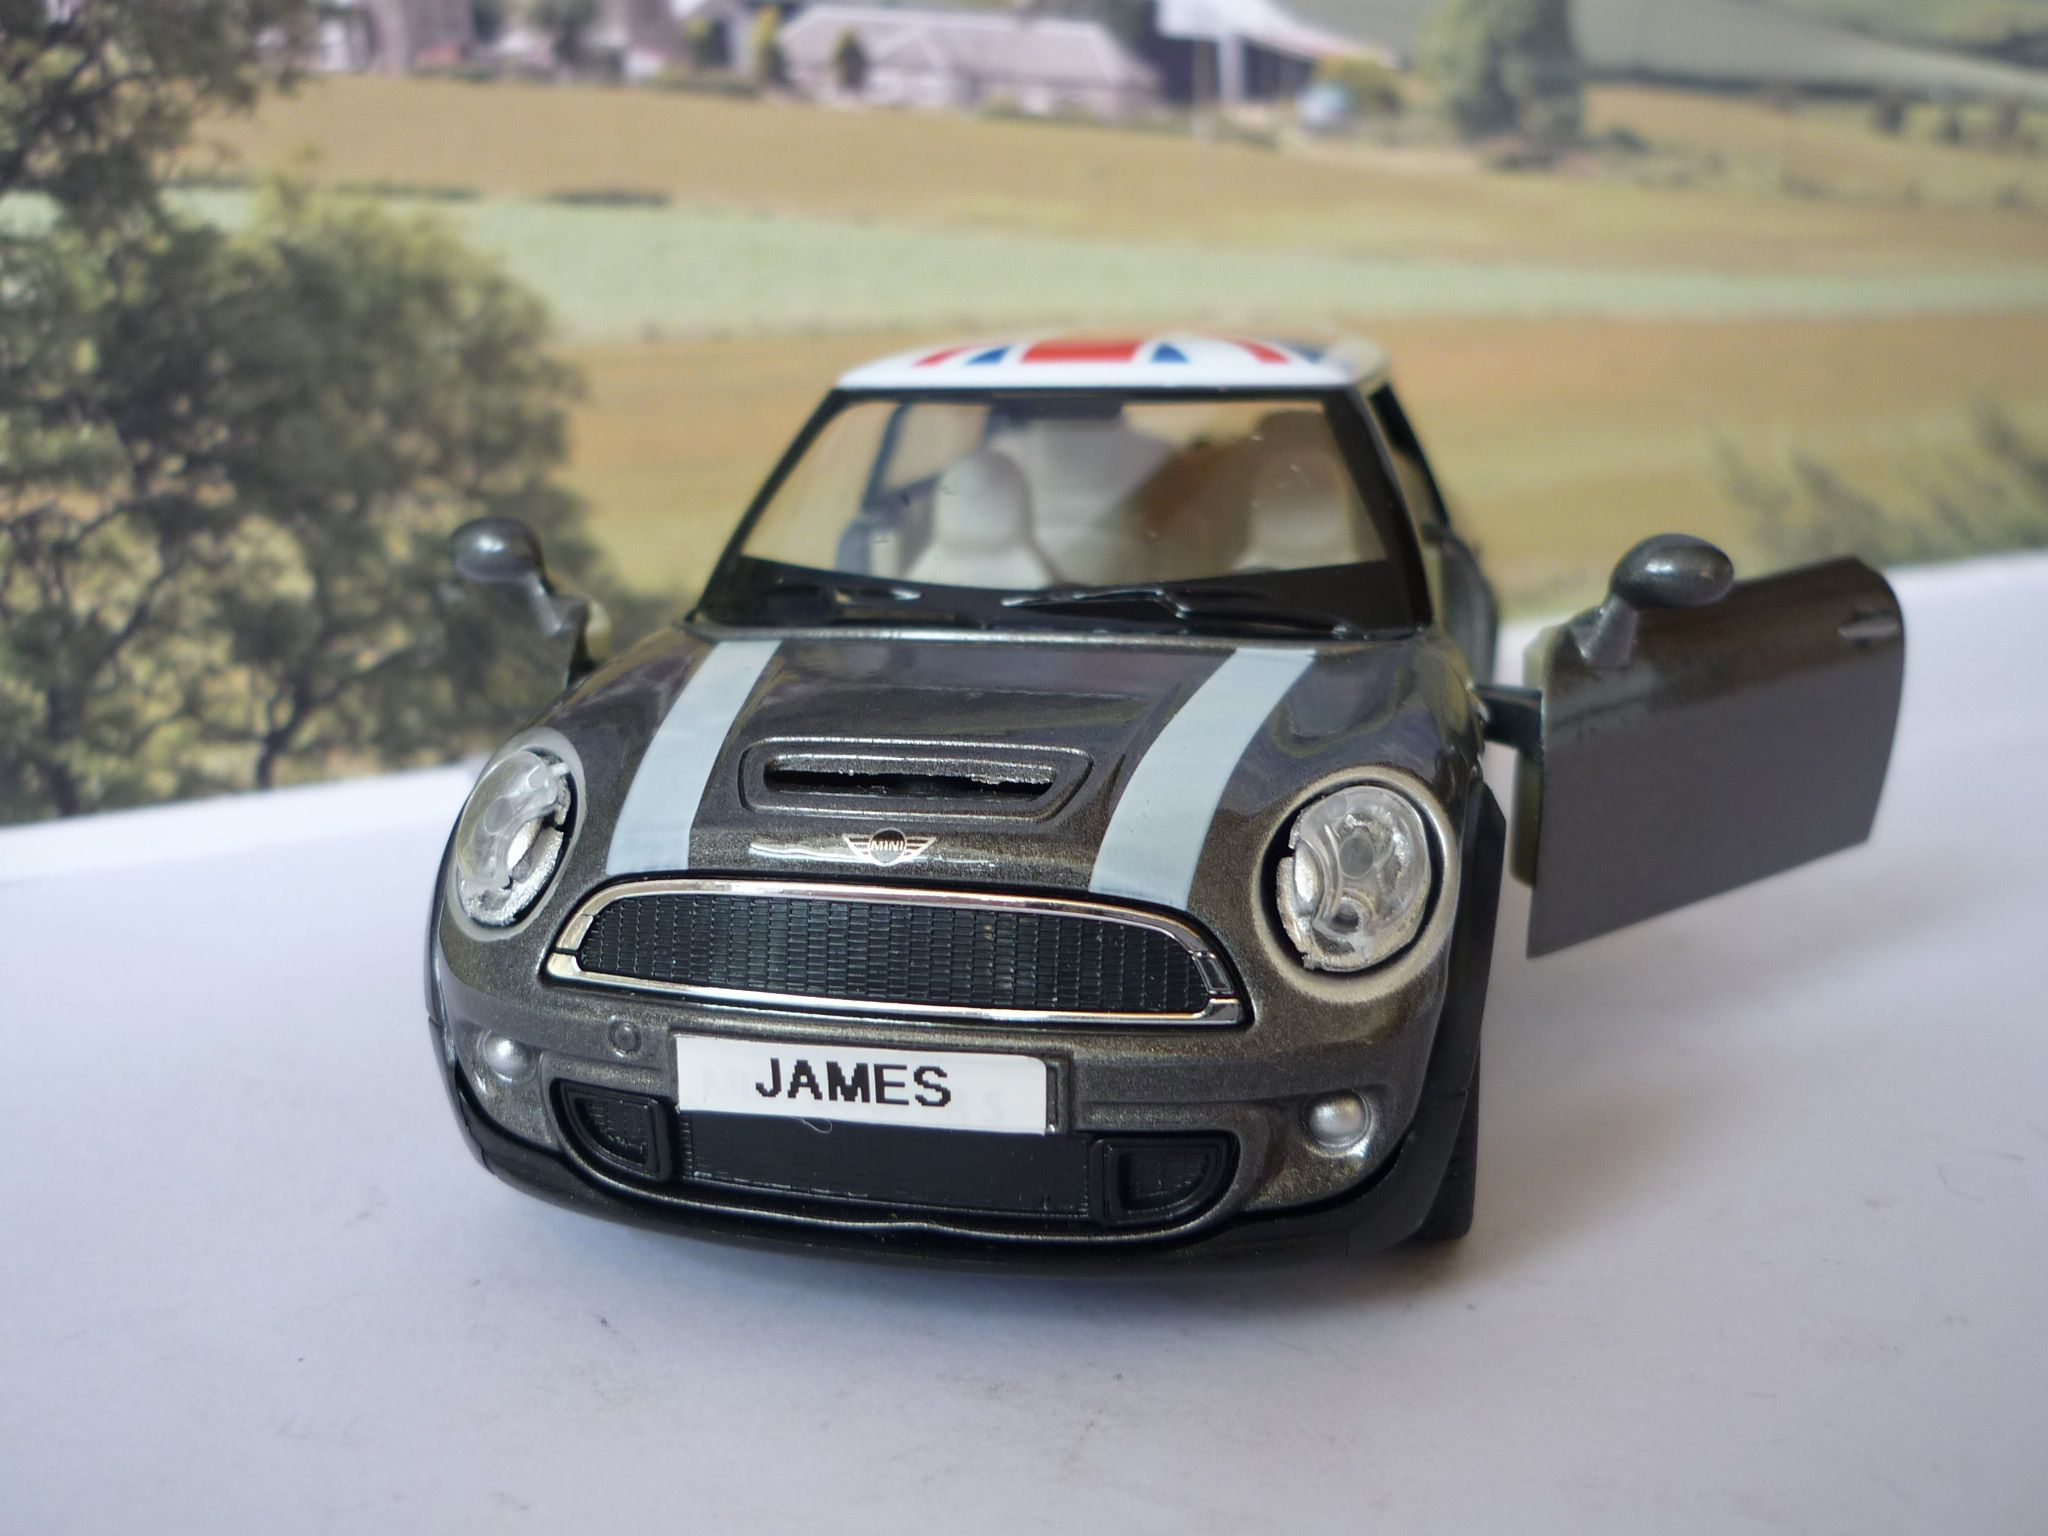 Design car number plates india - Grey Bmw Mini Cooper Toy Car Personalised Number Plates Ideal Gift